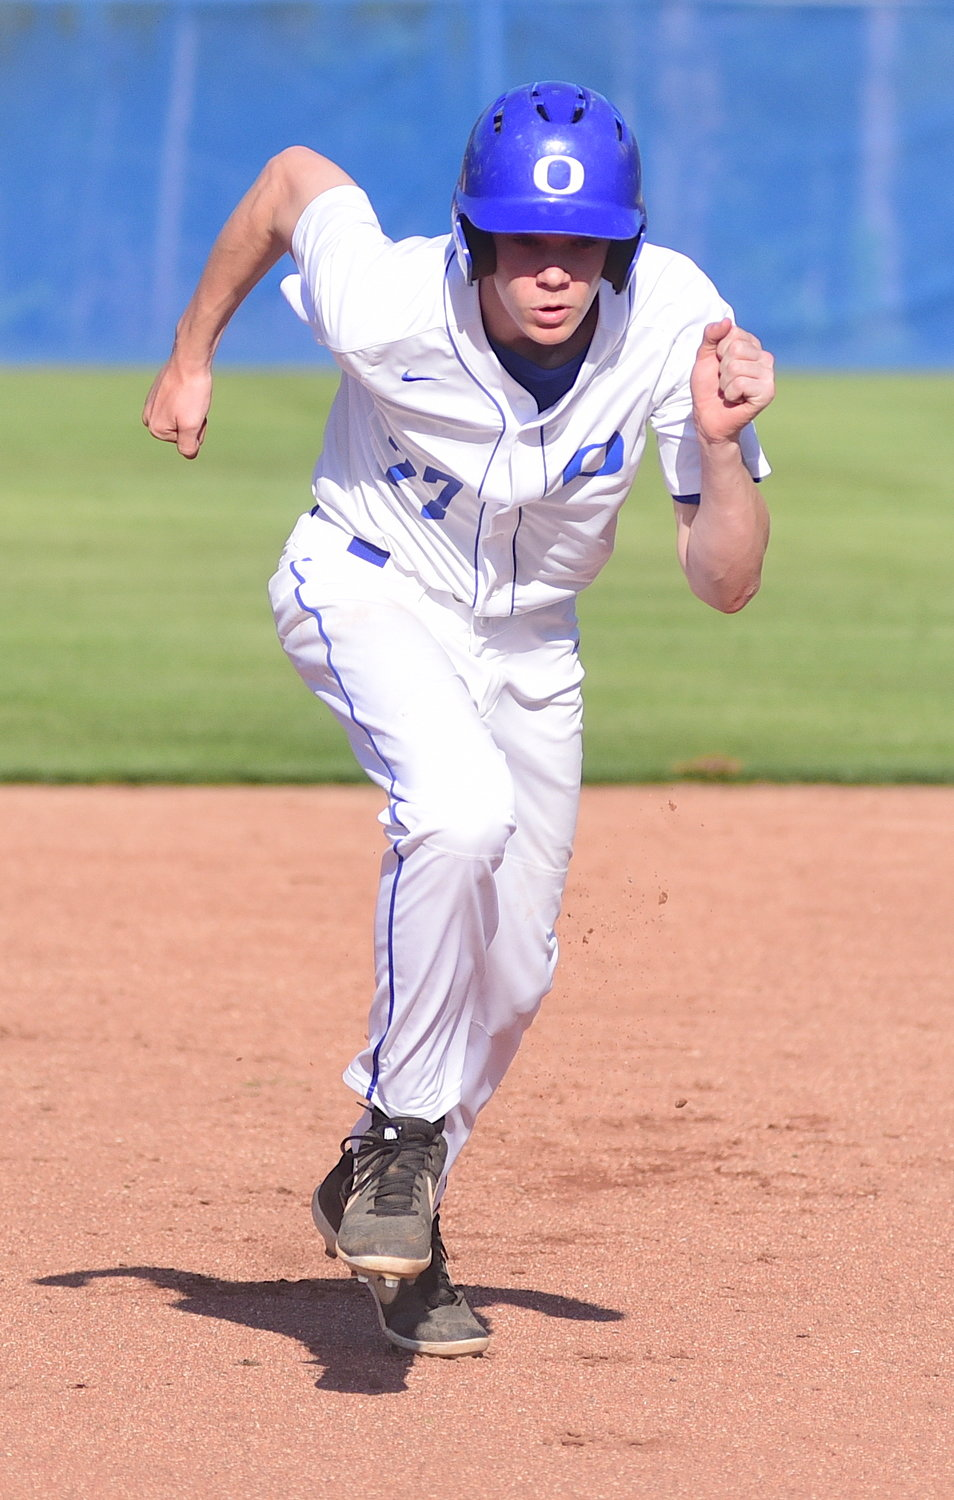 Oakman's Ketch Jones makes his way to third base during the Wildcats' game 3 loss to Hale County on Monday.